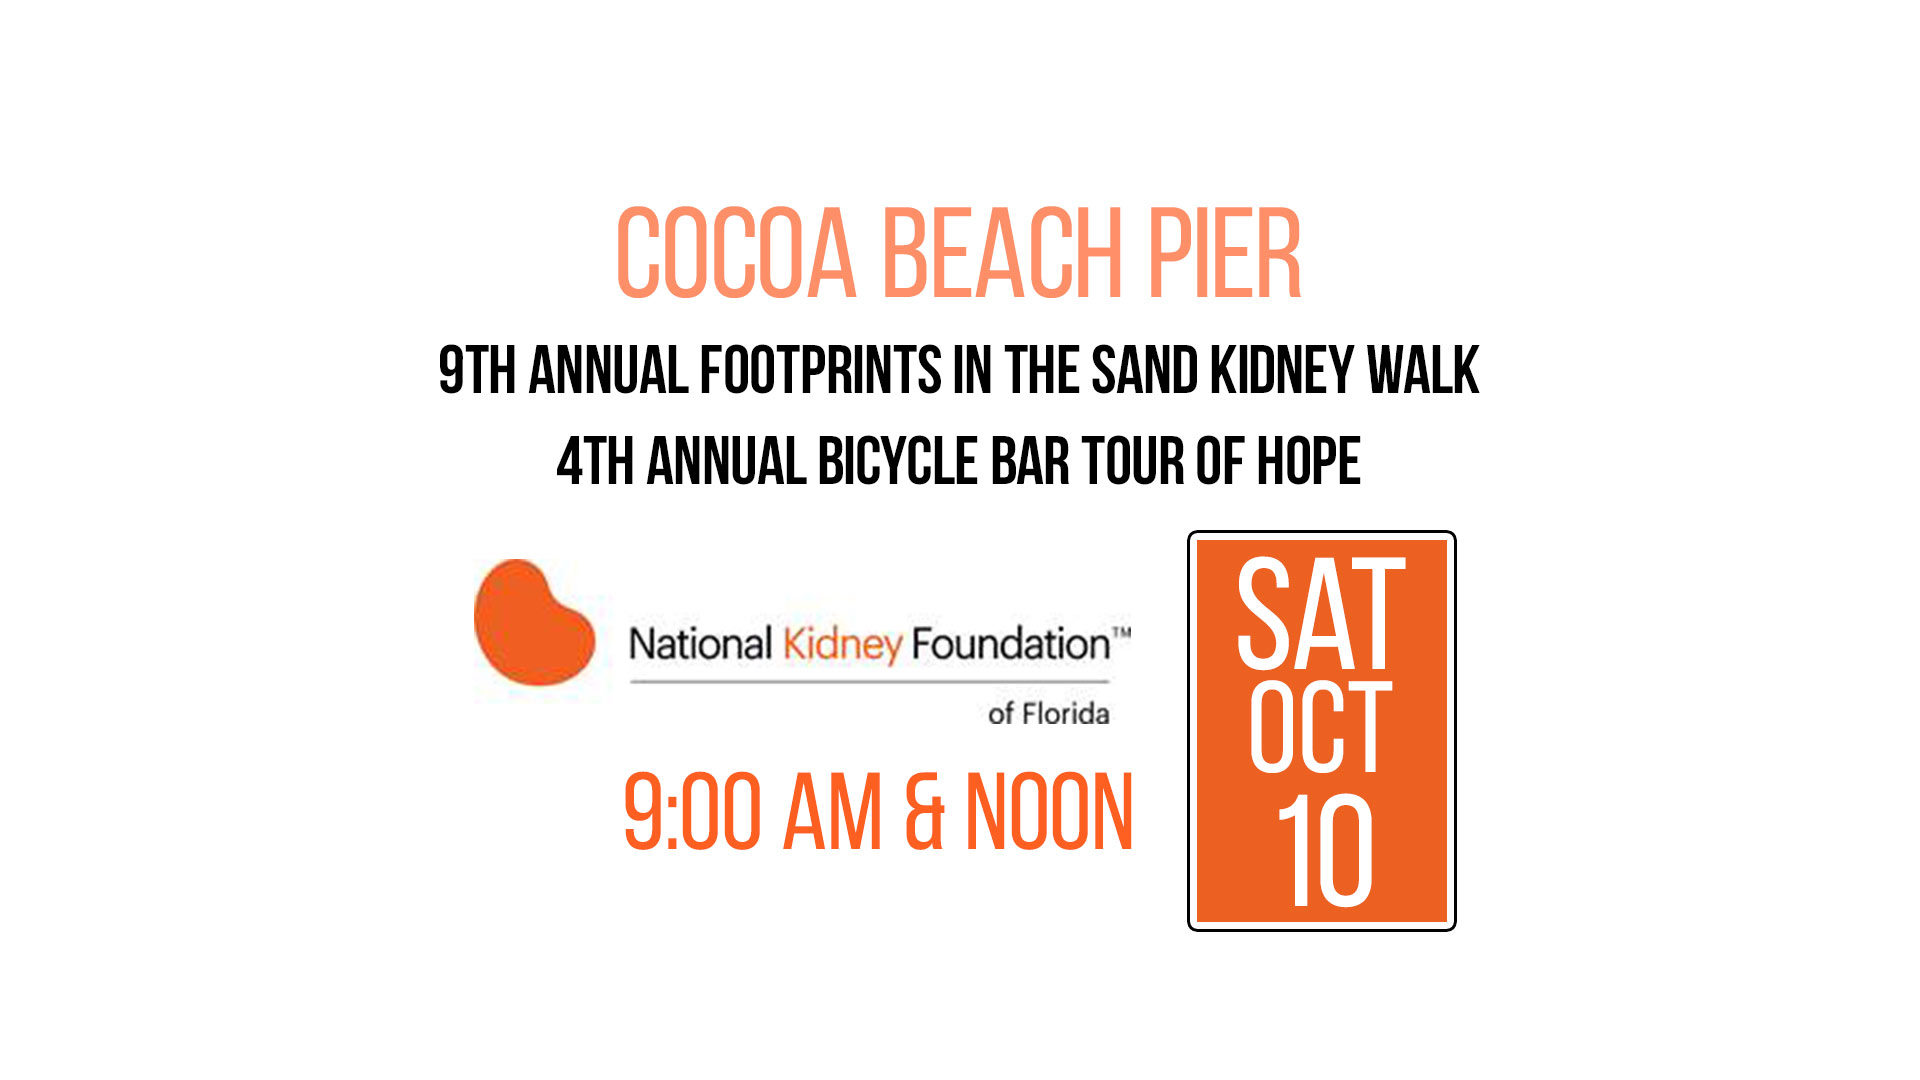 9th Annual Footprints in the Sand Kidney Walk and the 4th Annual Bicycle Bar Tour of Hope